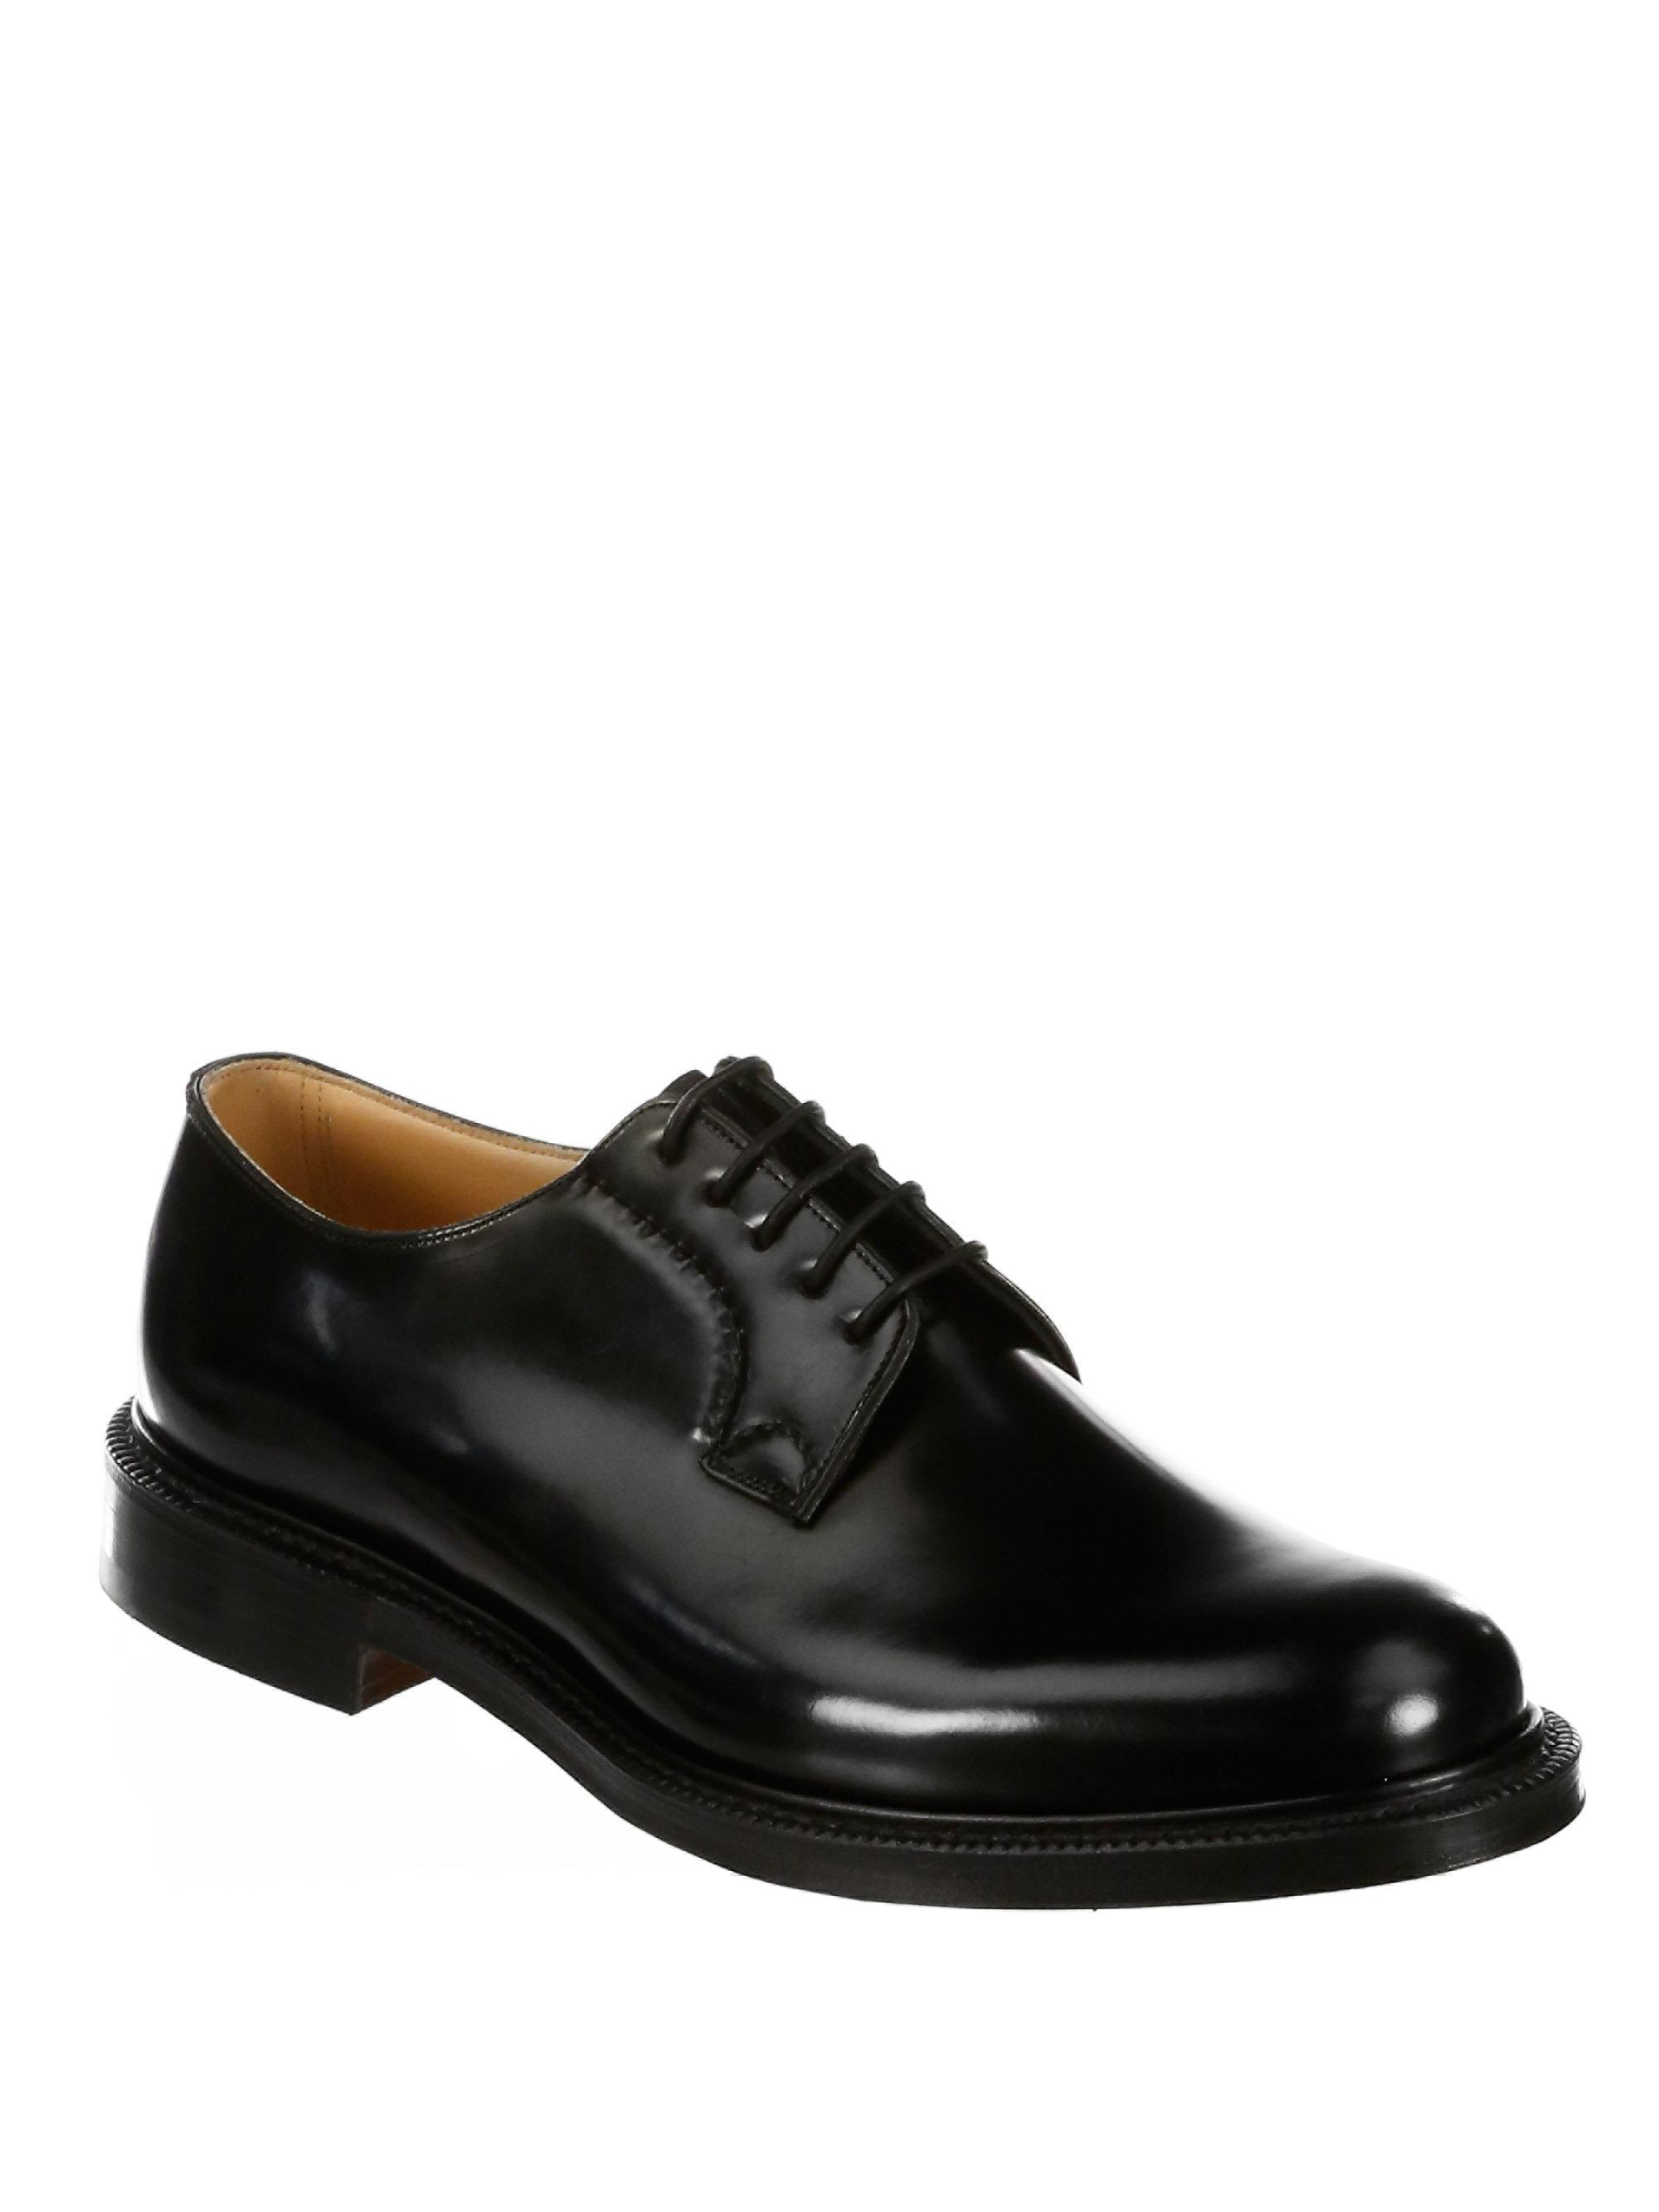 Church's Shannon Lace-Up Leather Oxfords zDTshRh